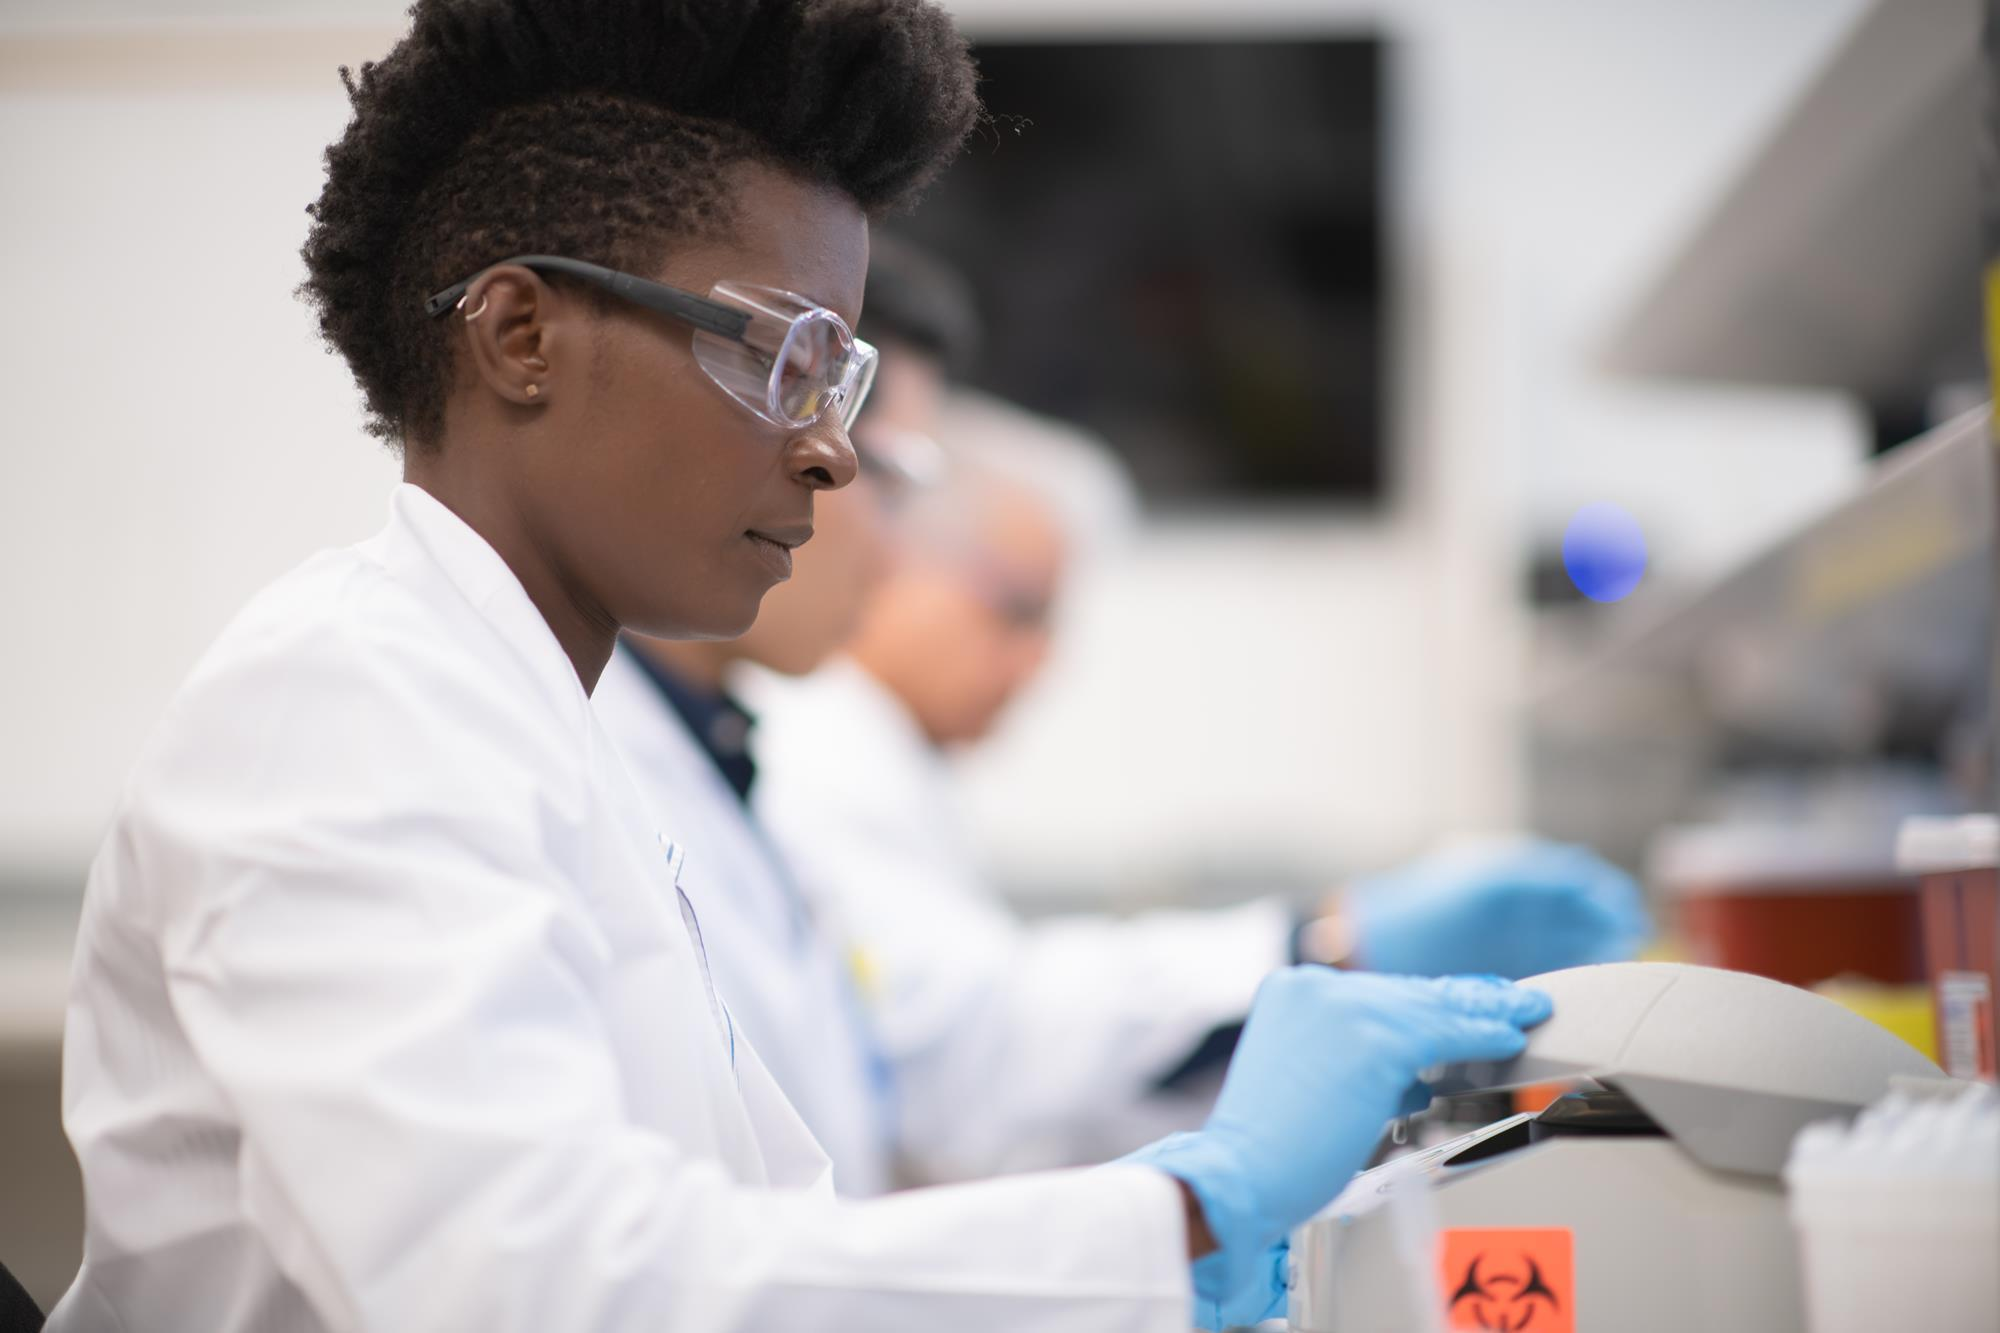 UK chemistry pipeline loses almost all of its Black, Asian and other ethnic minority chemists after undergraduate studies